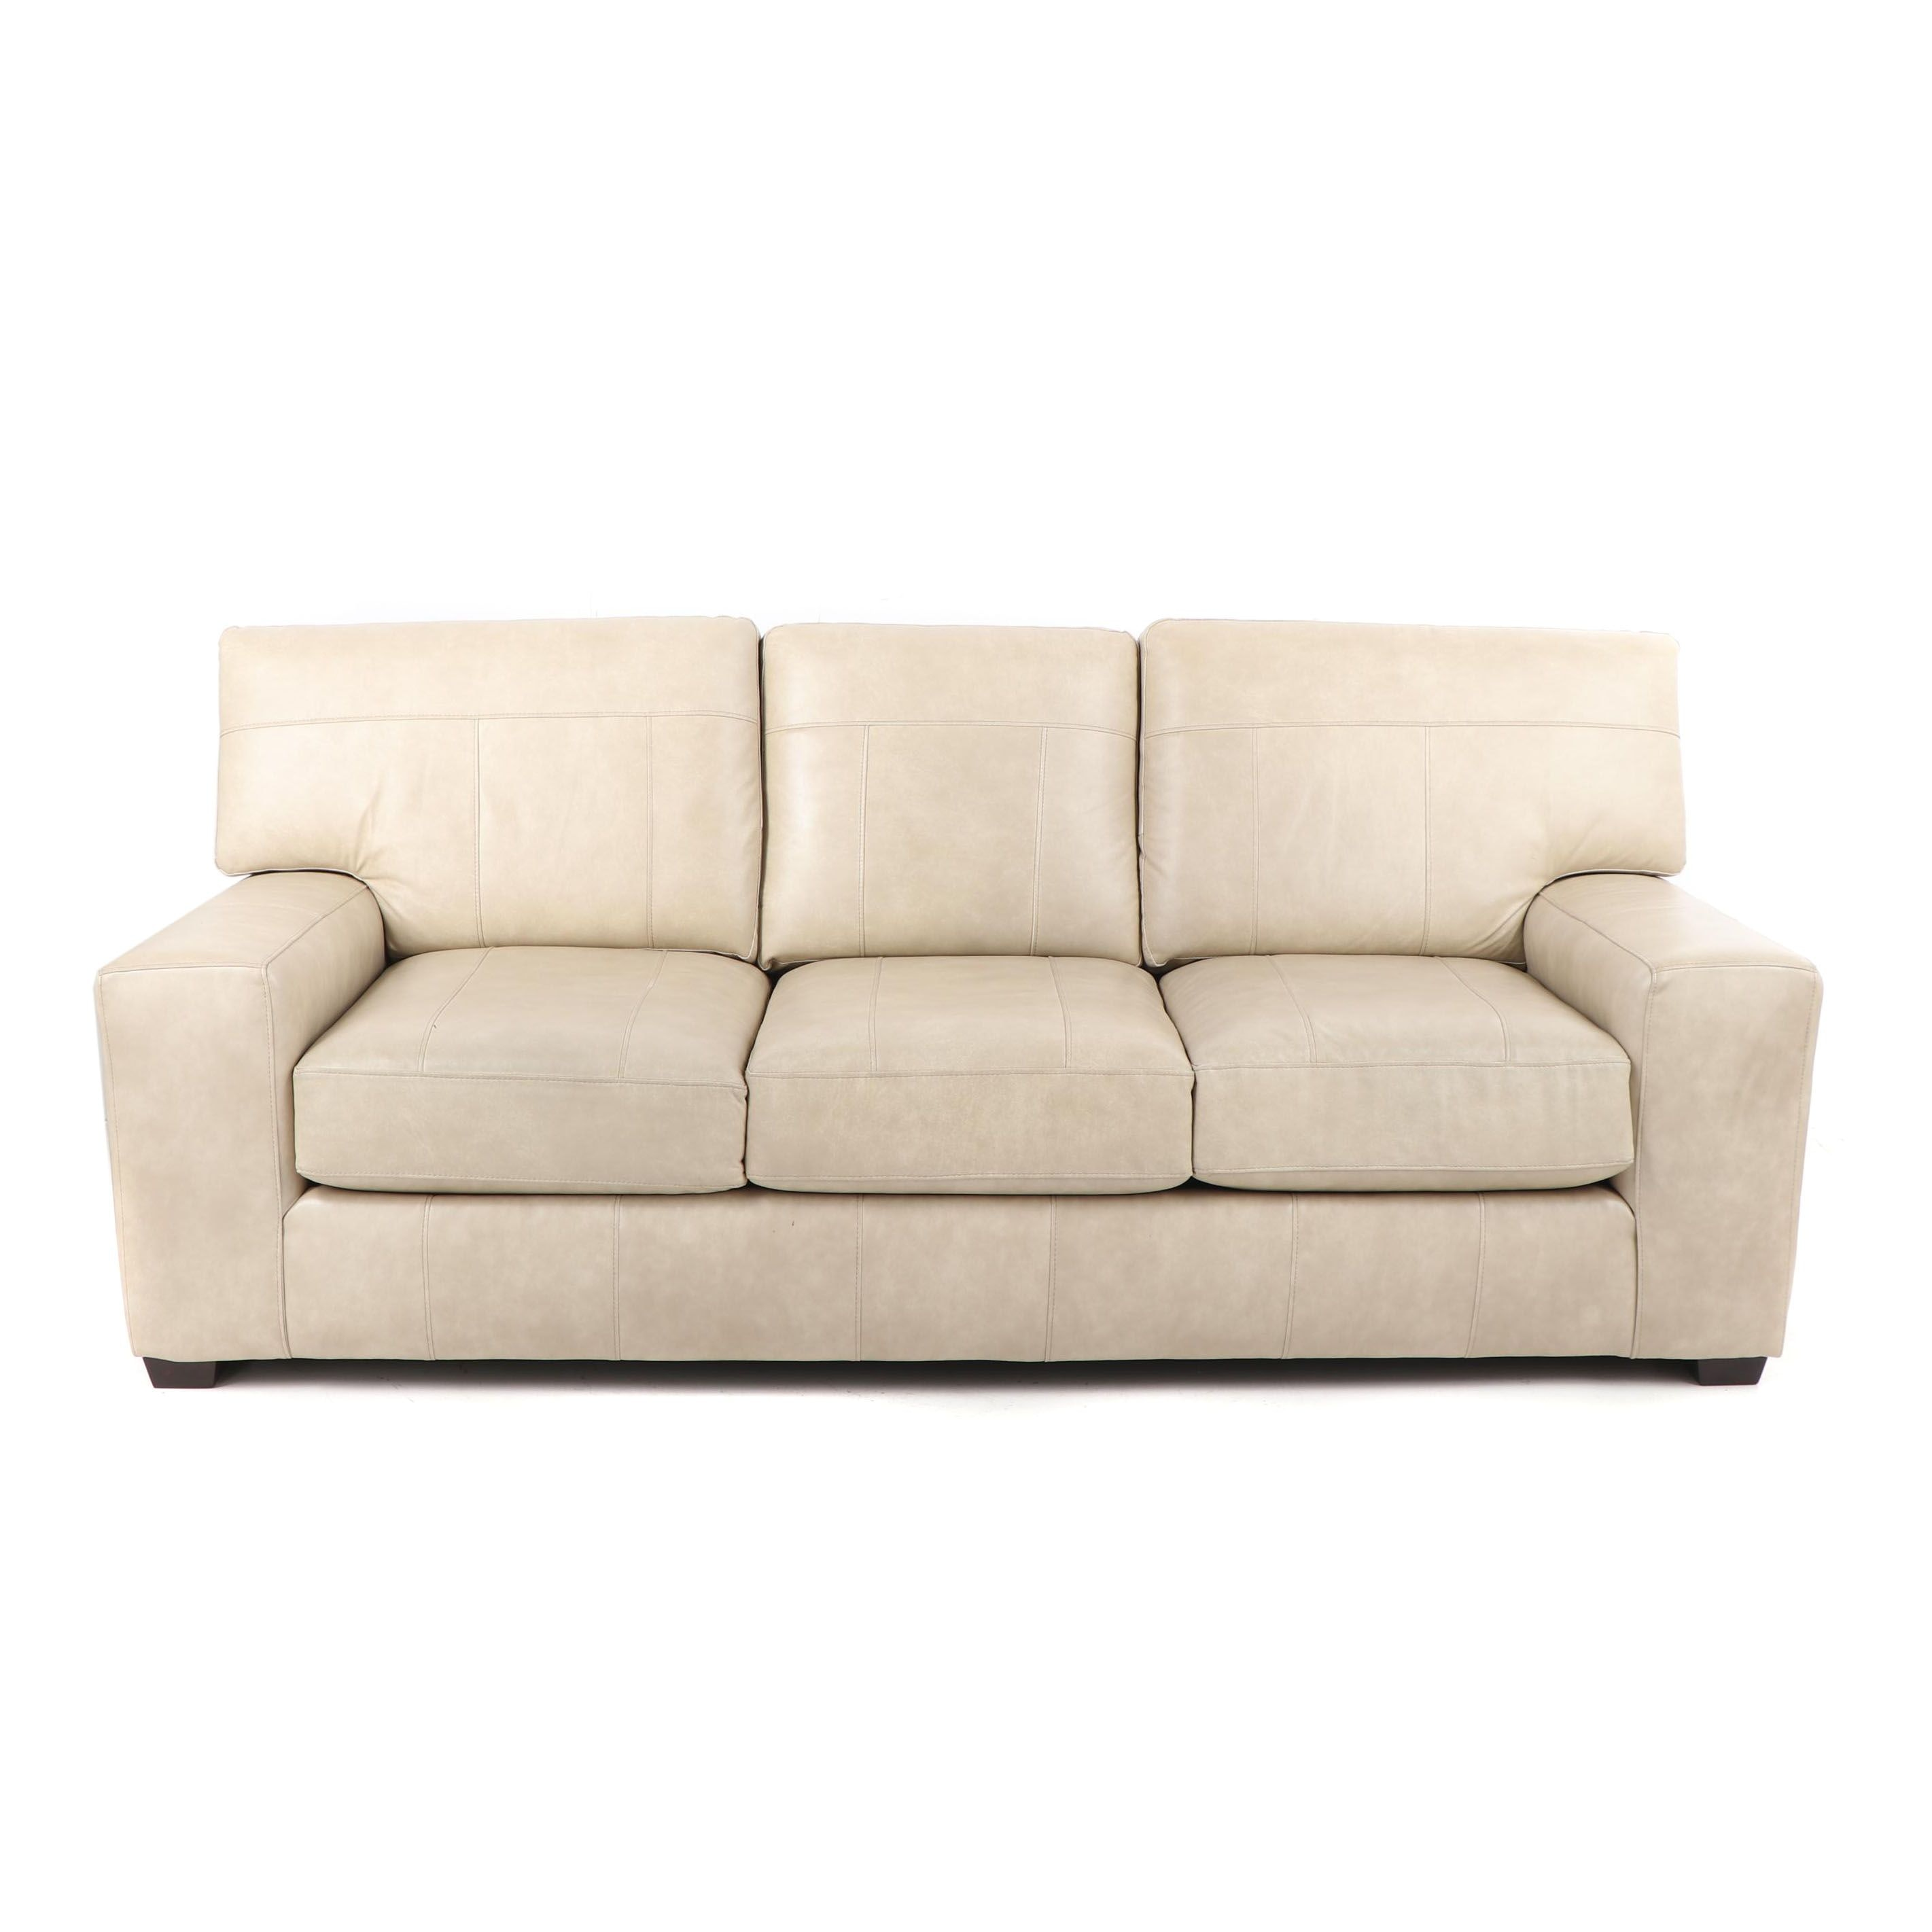 Faux Leather Sofa, 21st Century